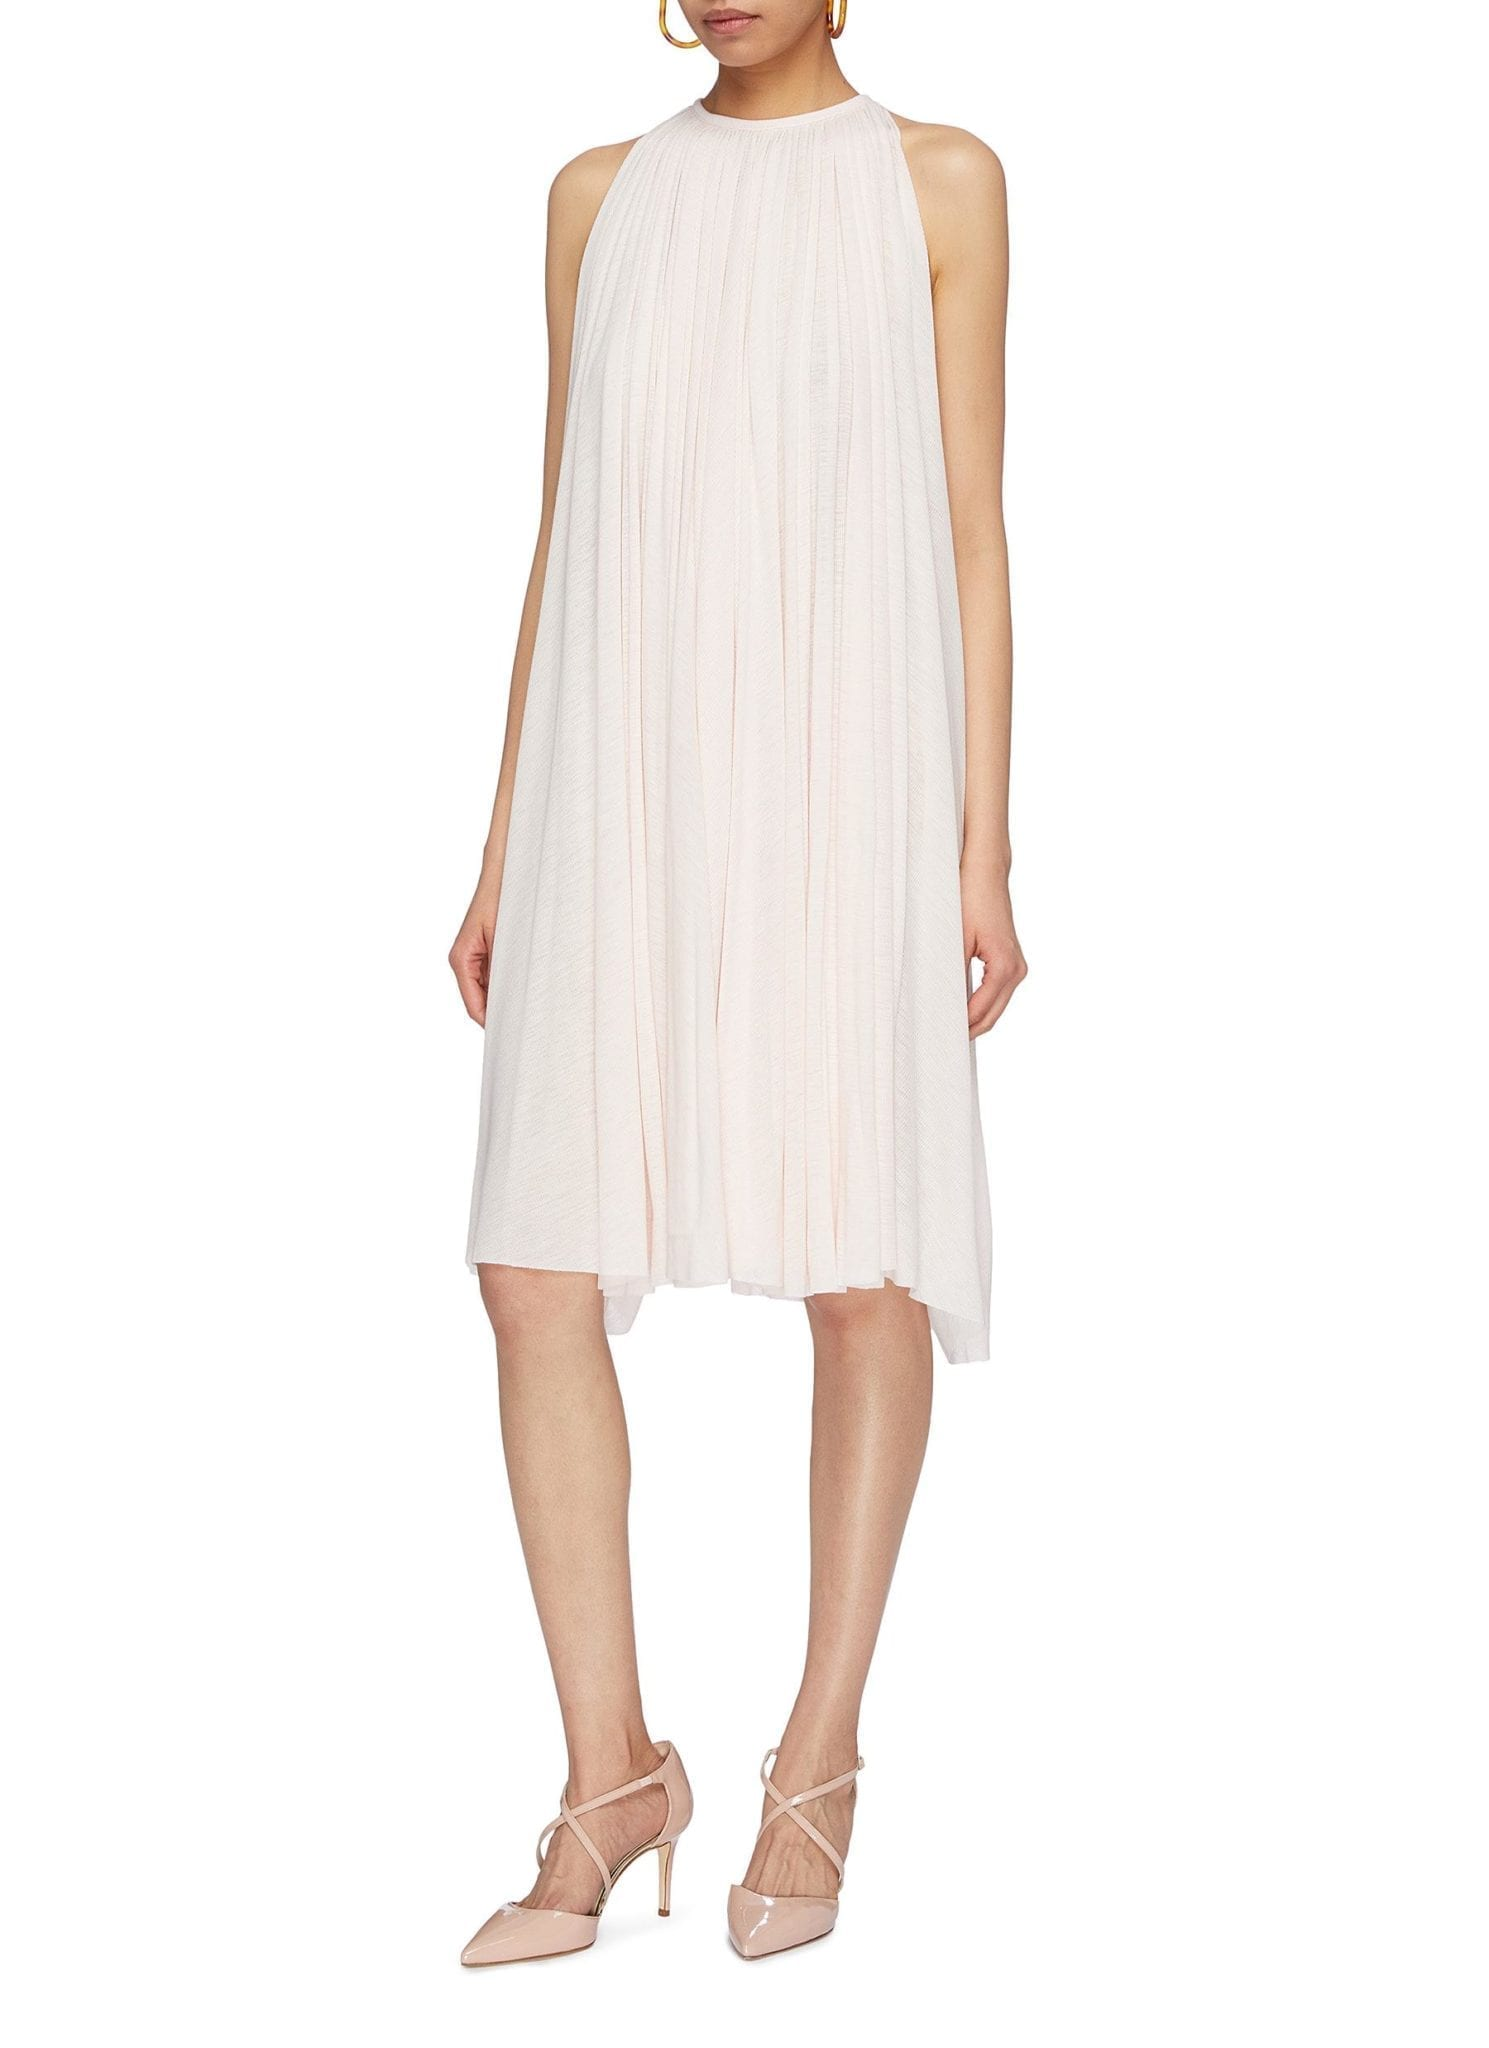 ESTEBAN CORTAZAR Pleated Jersey Sleeveless Pale Pink Dress